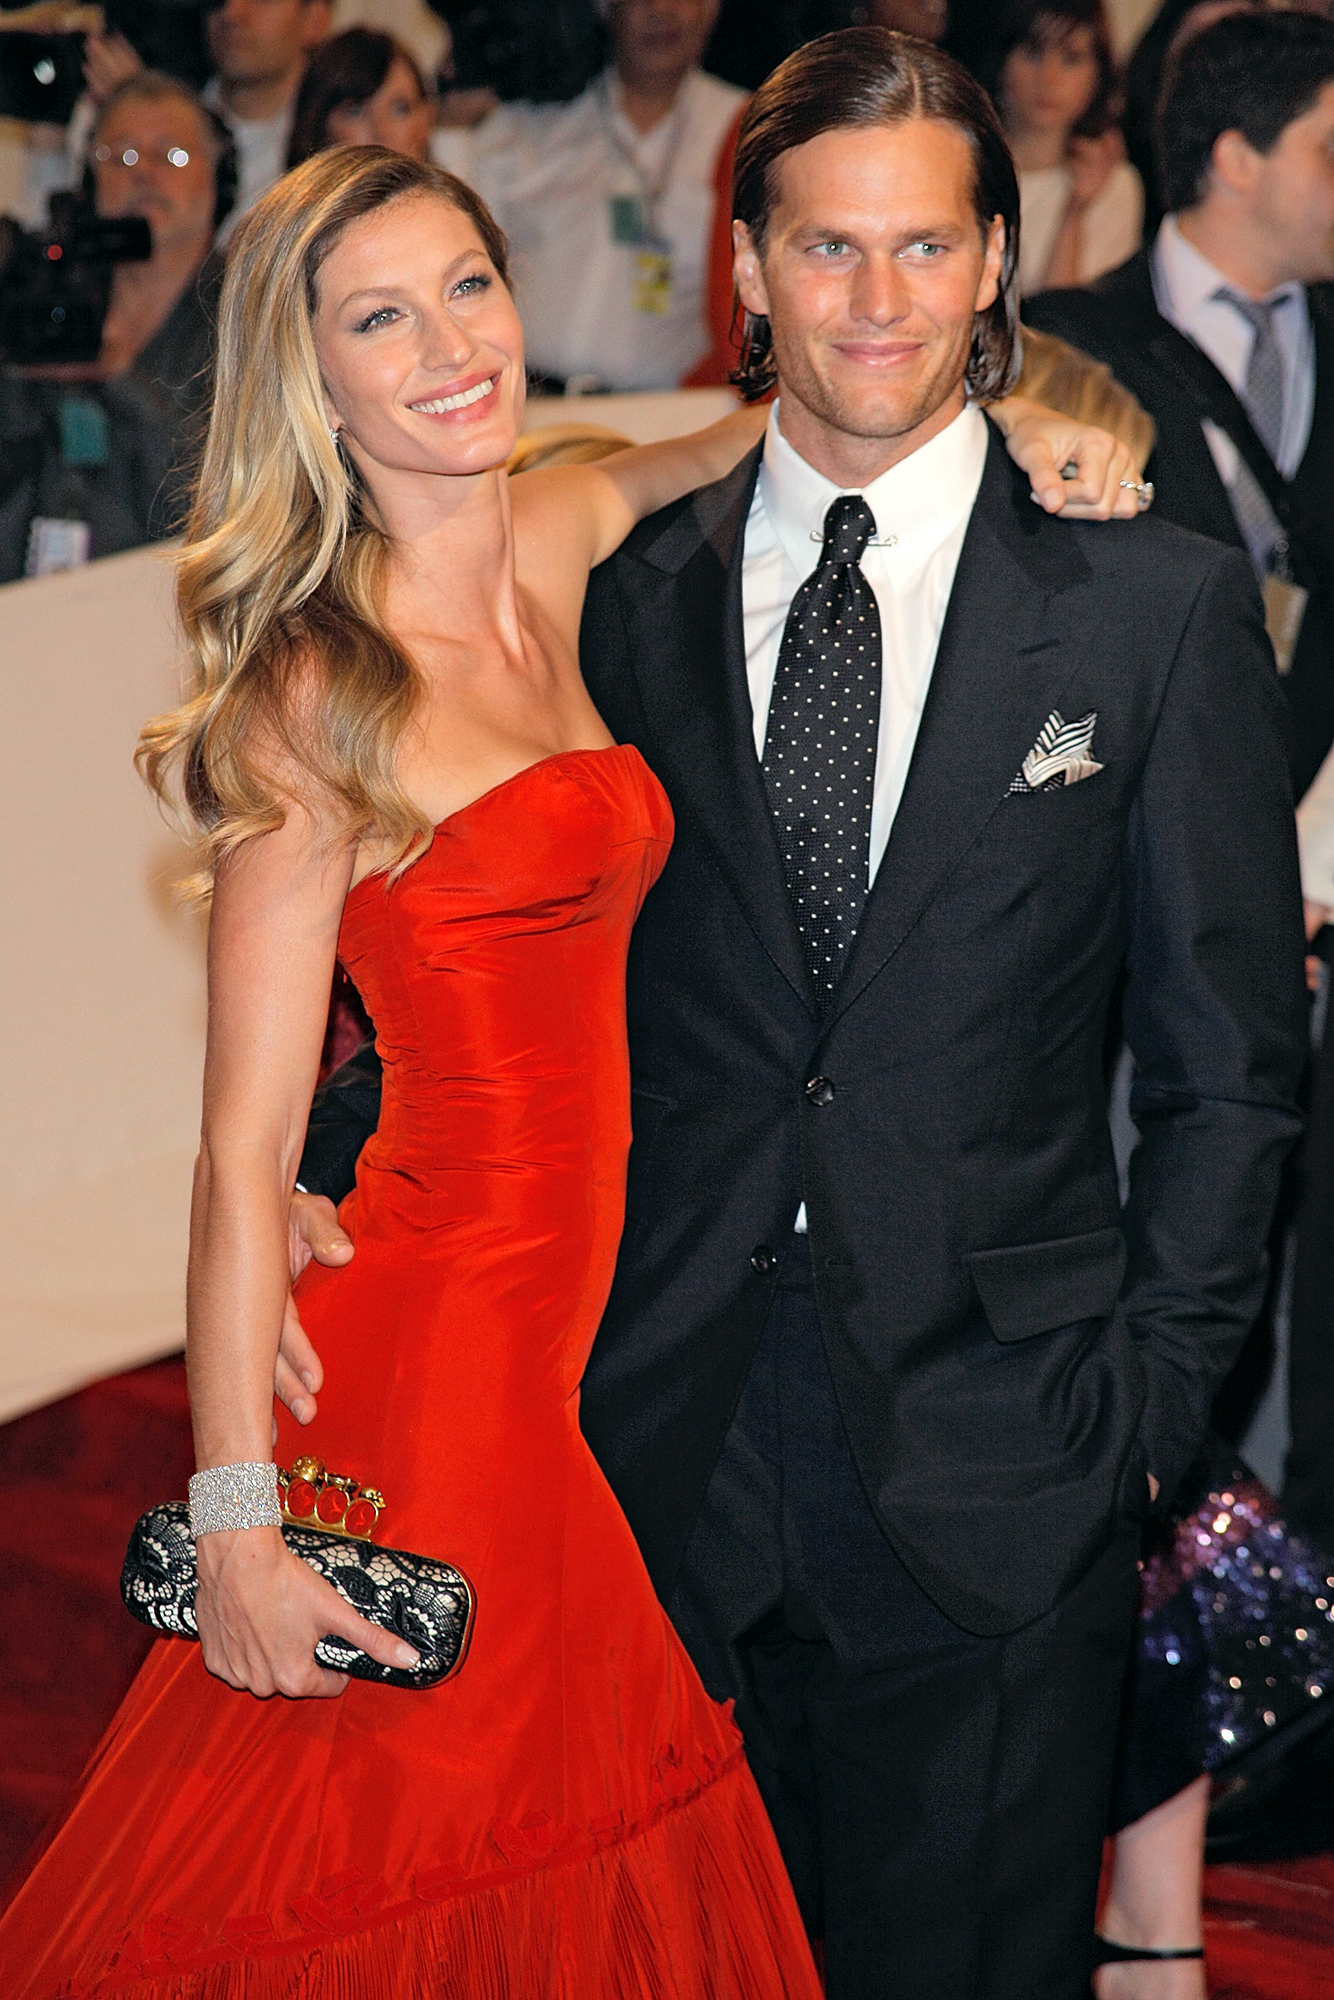 """Tom Brady and Gisele Bundchen: A Timeline of Their Relationship - Two months into their marriage, the duo threw a second wedding in Costa Rica. """"The thing about it is, the day's for you,"""" Brady told GQ in November 2009 about the couple's decision to only invite family to their weddings."""